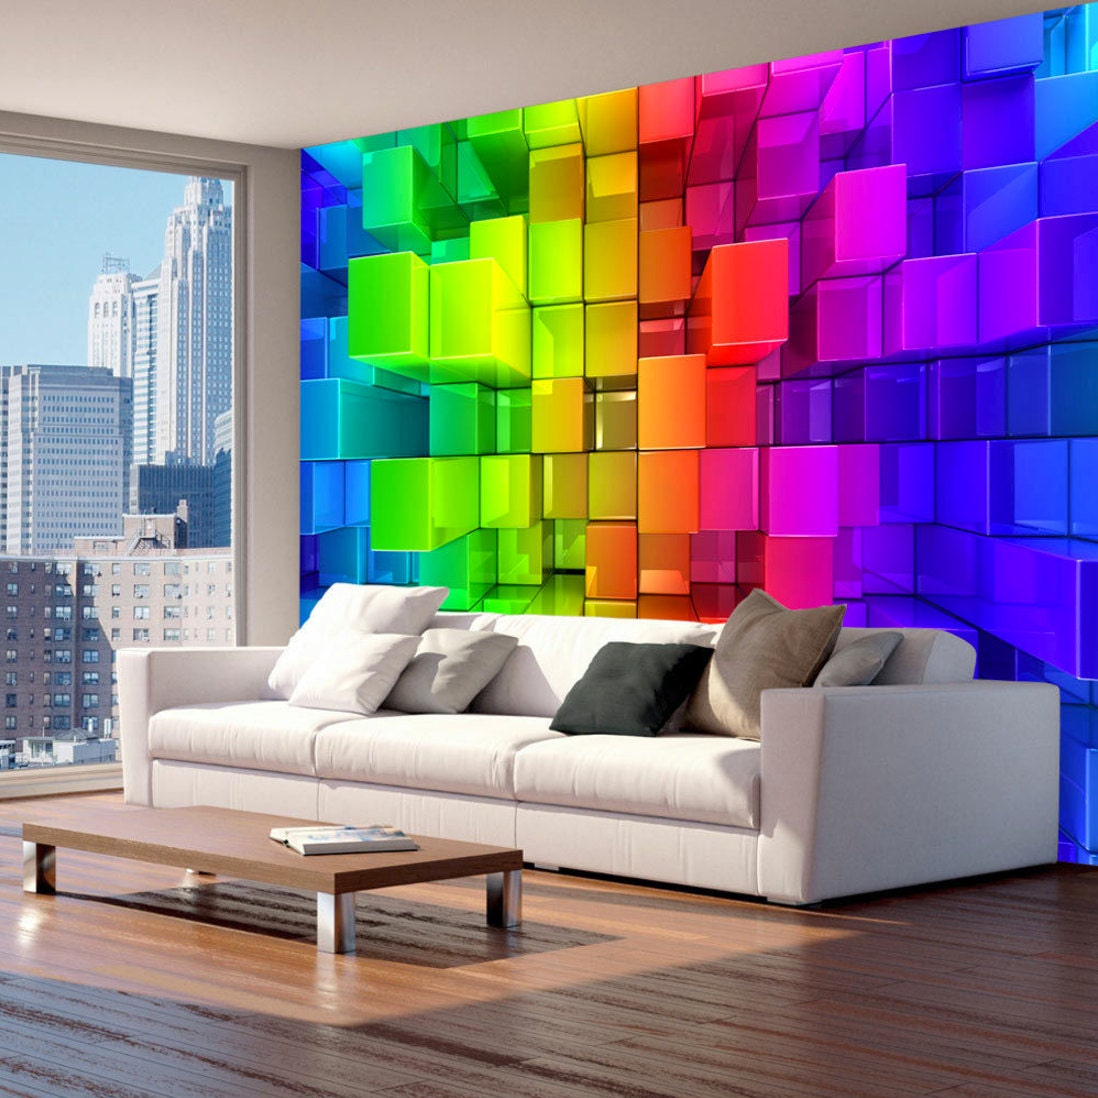 Photo Wallpaper Wall Murals Non Woven 3D Squares Modern Art Optical Illusion Decals Bedroom Decor